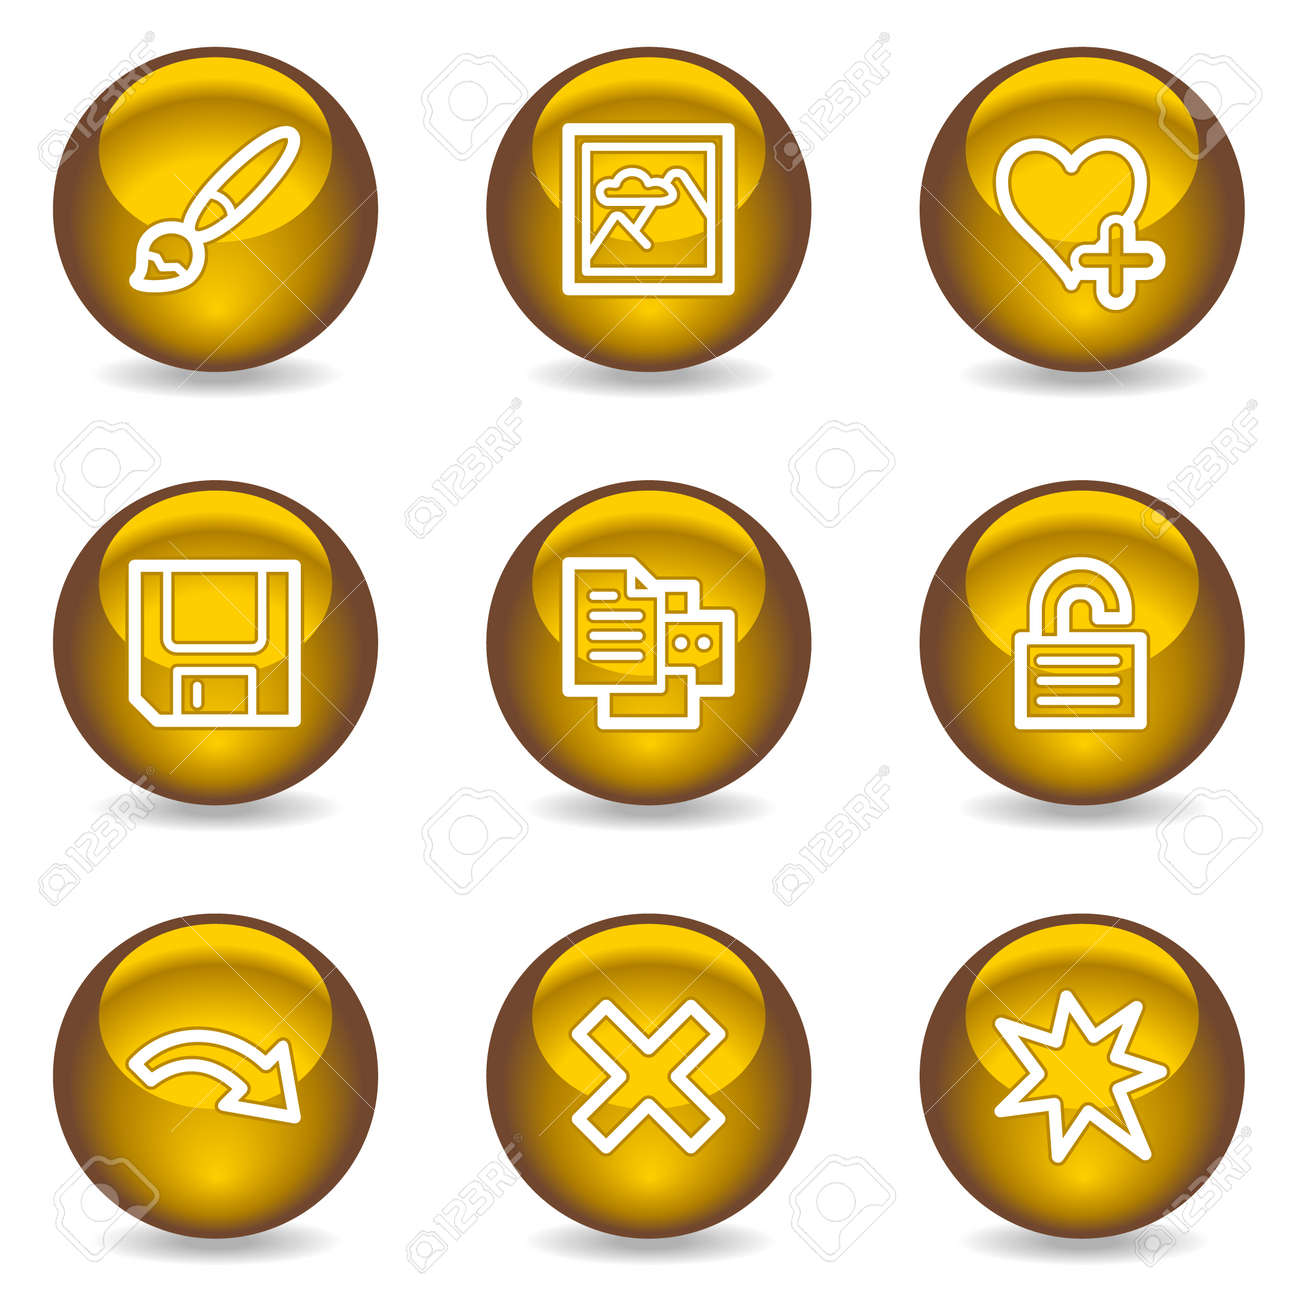 Image viewer web icons set 2, gold glossy series Stock Vector - 6046823